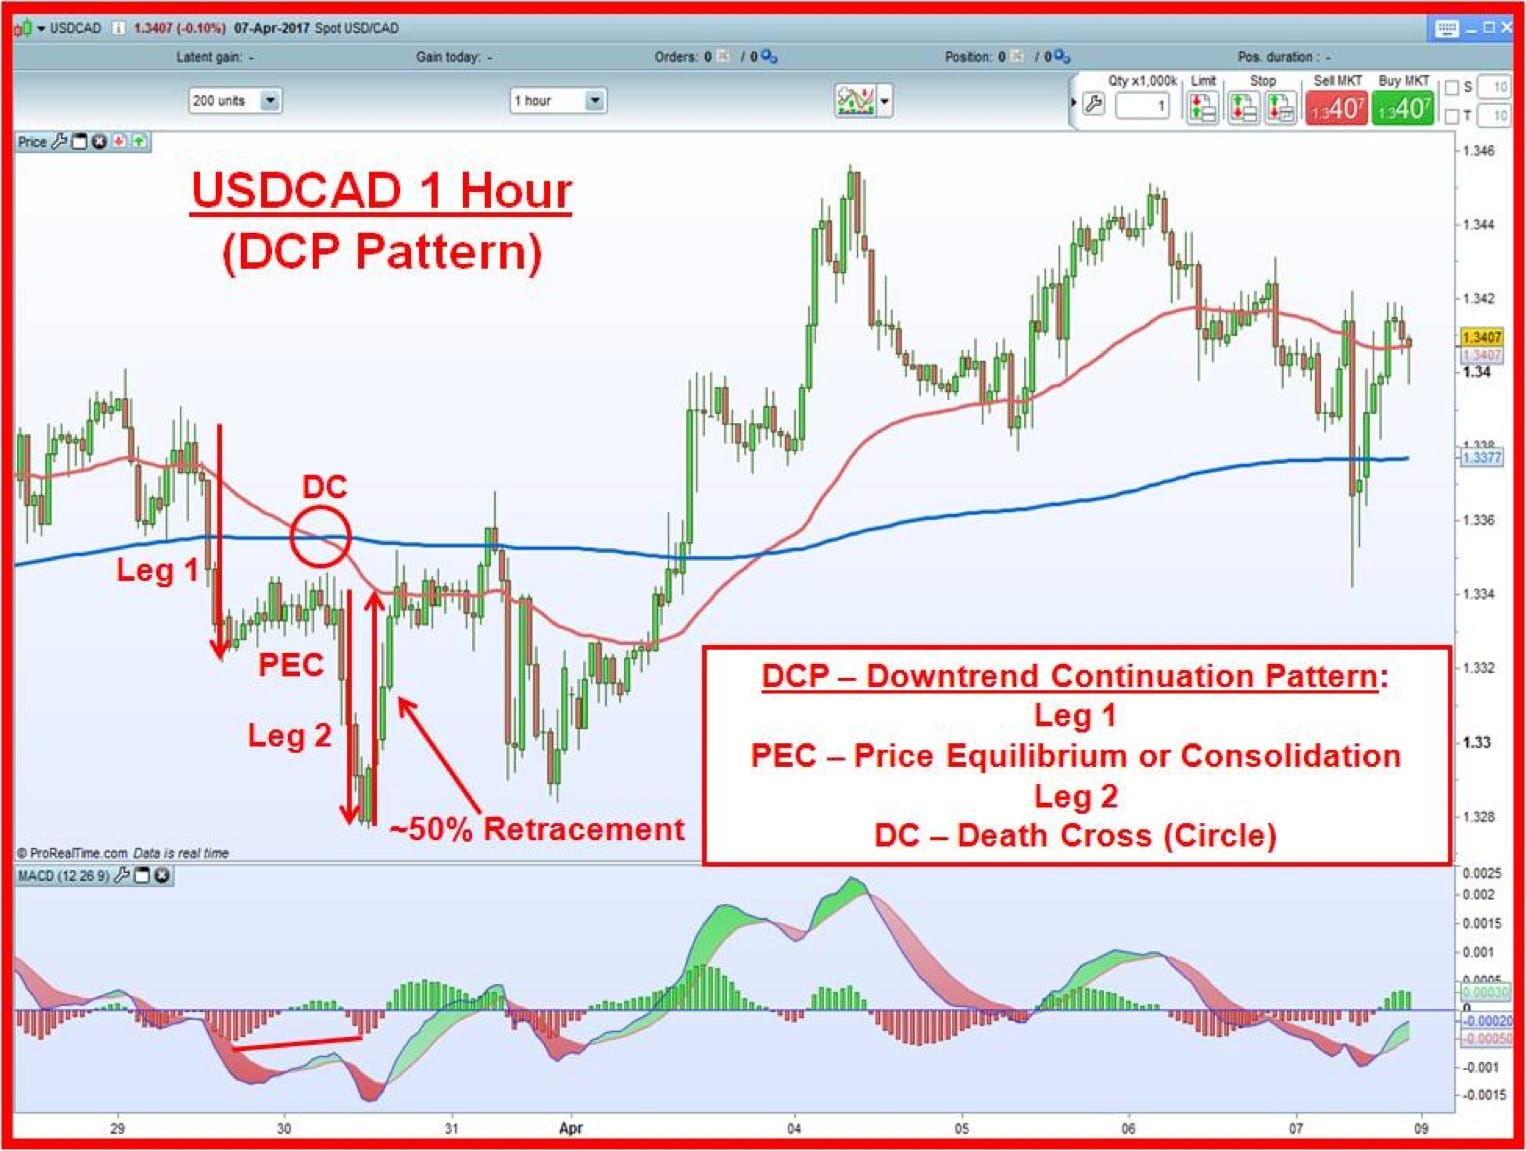 USDCAD 1 hour chart with DCP pattern, Death Cross, and 50% retracement after DCP formation unfolded.